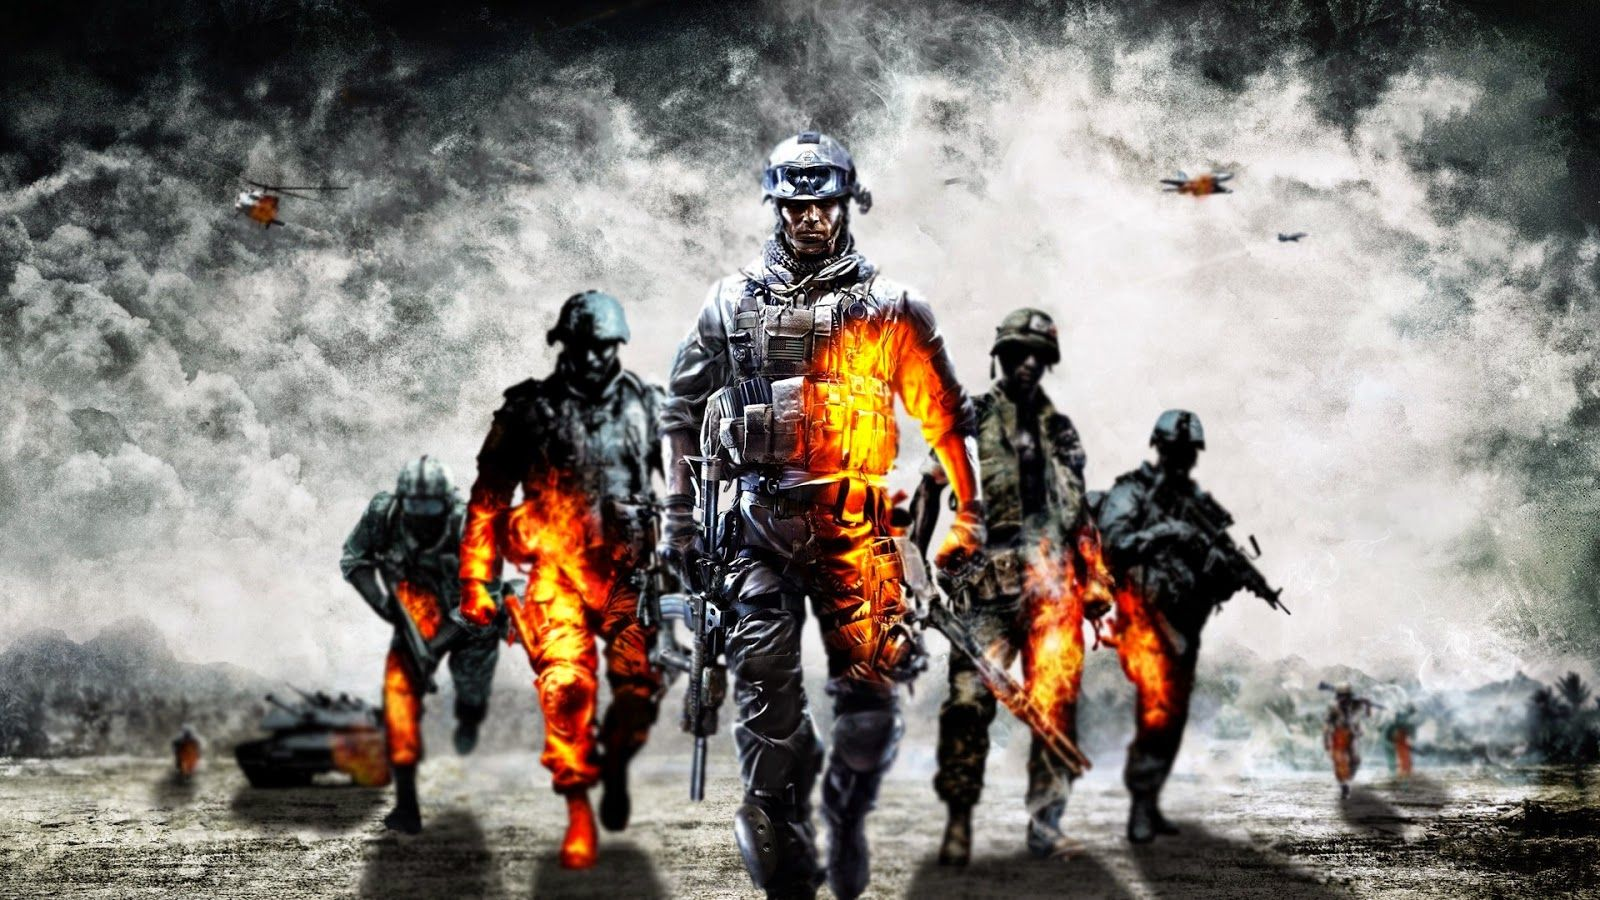 Must see Wallpaper Gaming Battlefield - f4646eb32db99c8bfbc3018feaae767e  Collection_1910053 .jpg